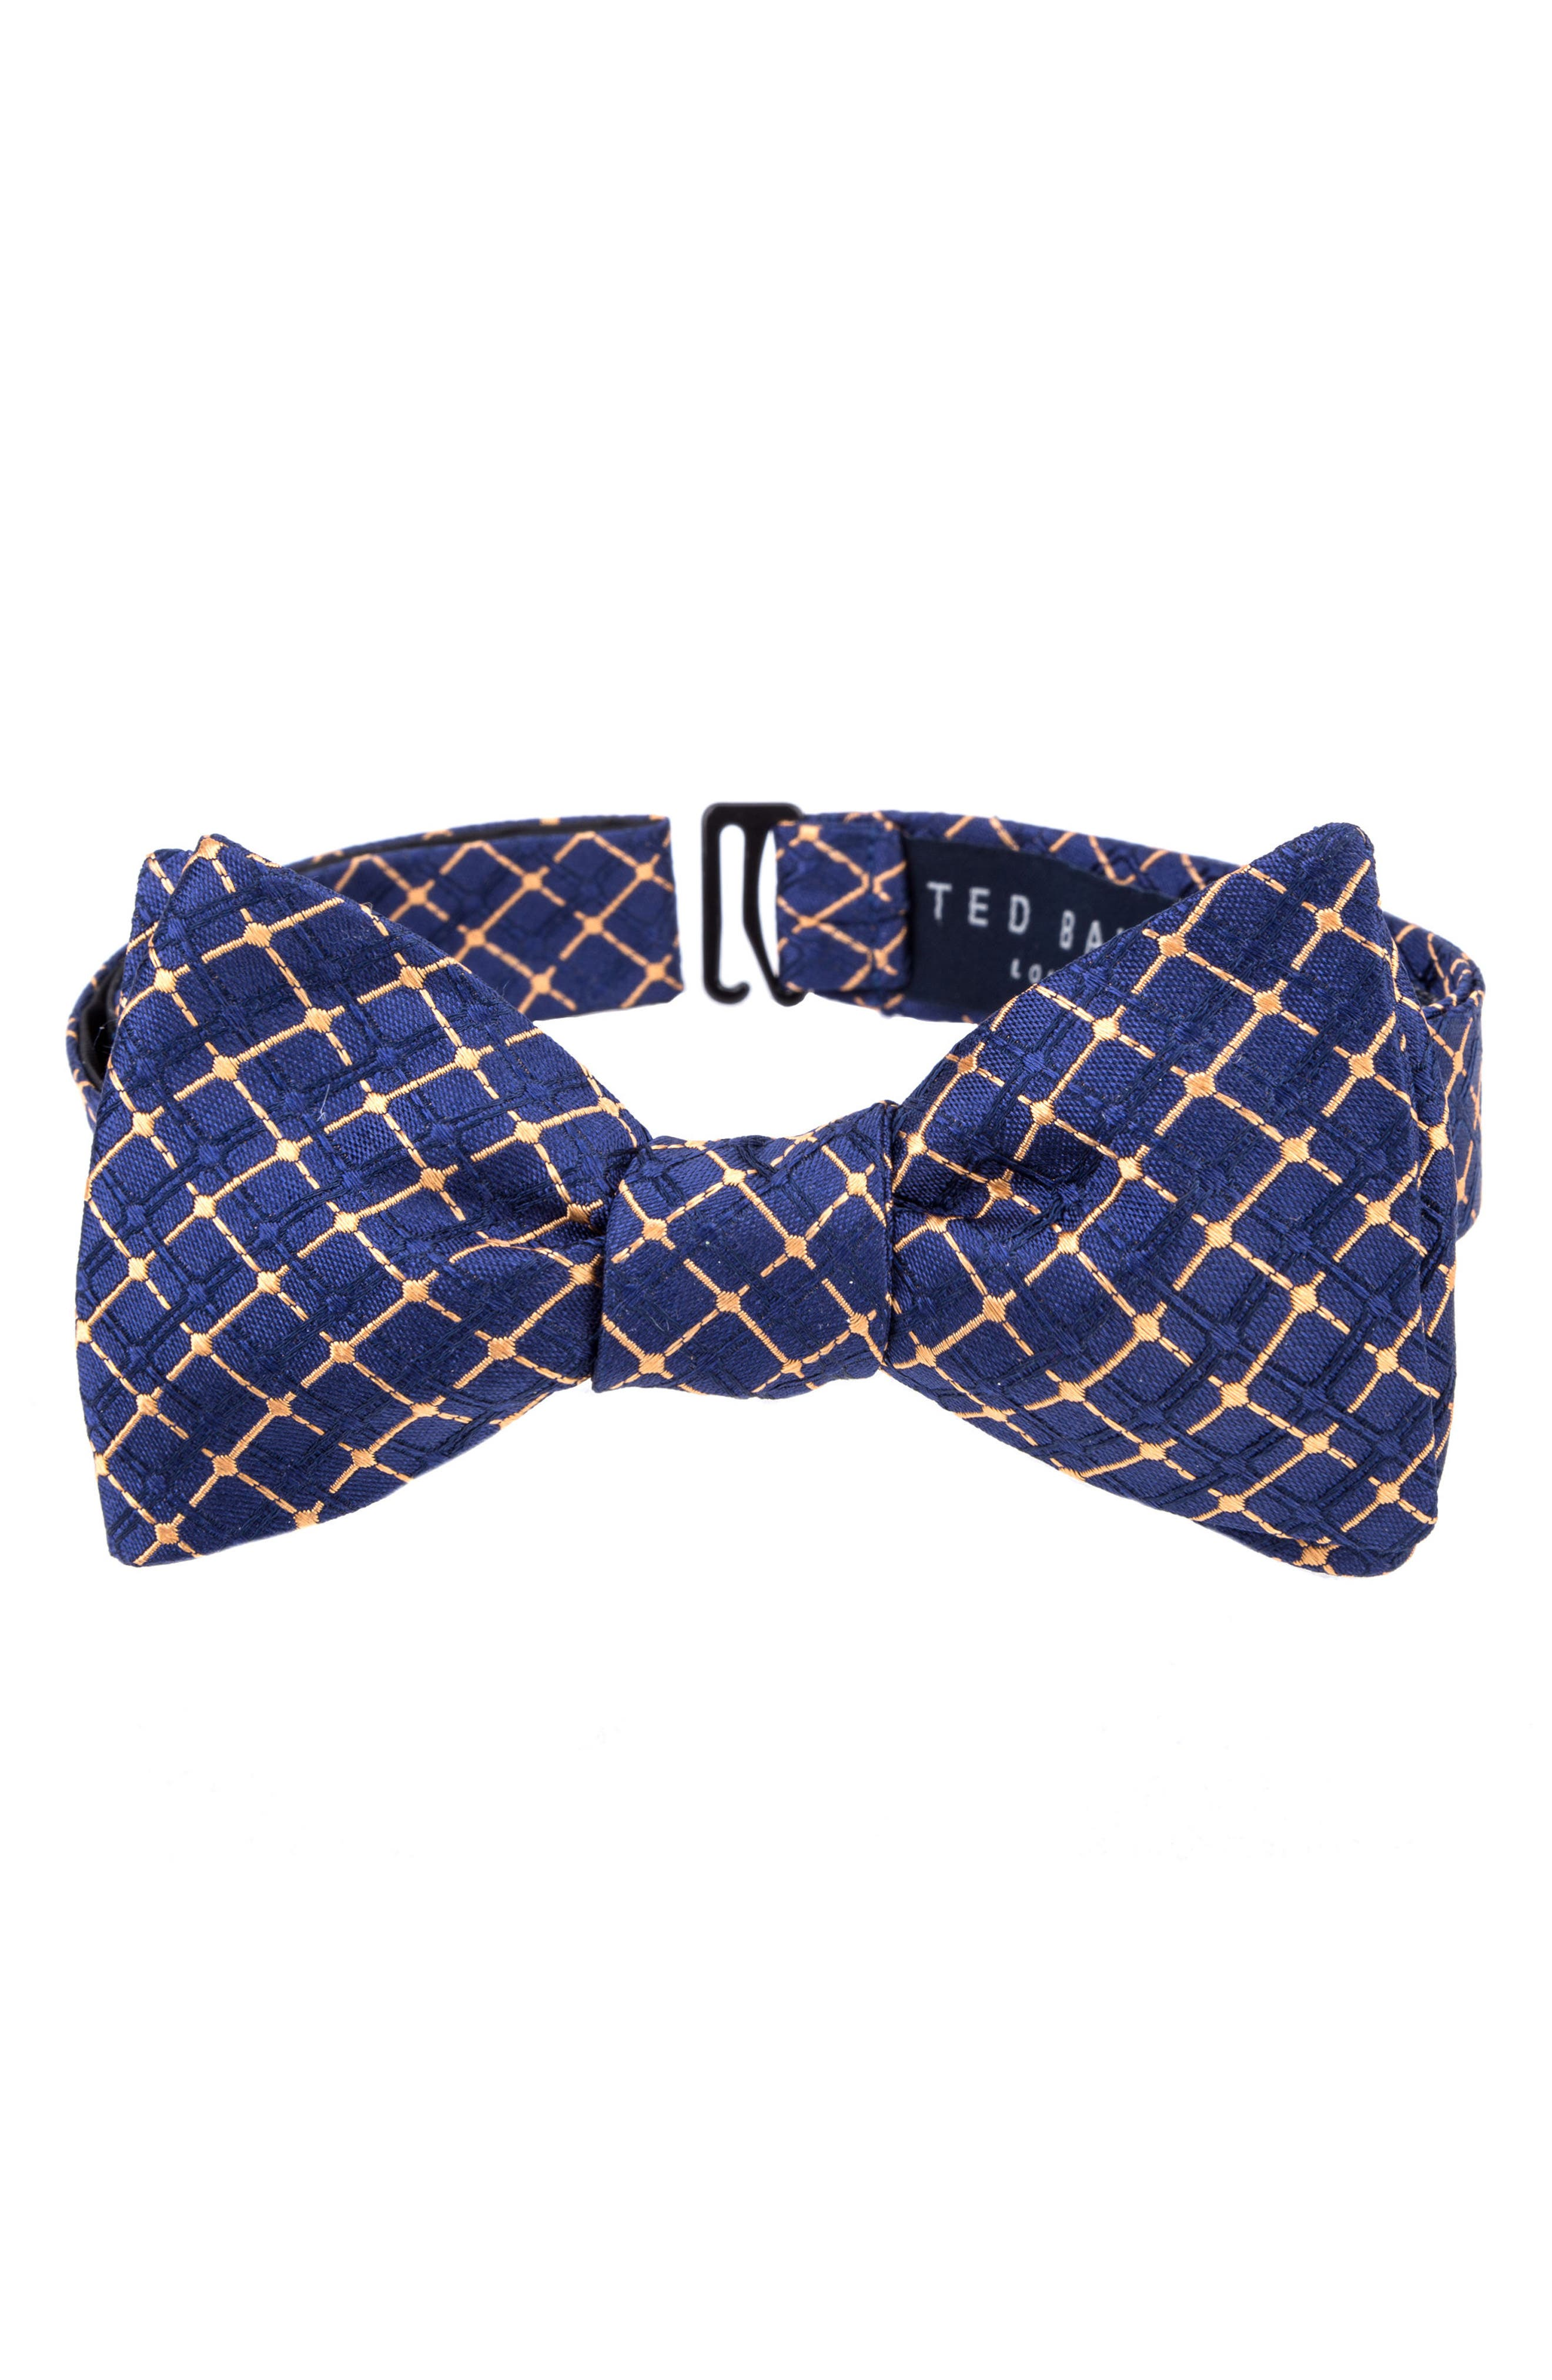 Main Image - Ted Baker London Superb Check Silk Bow Tie